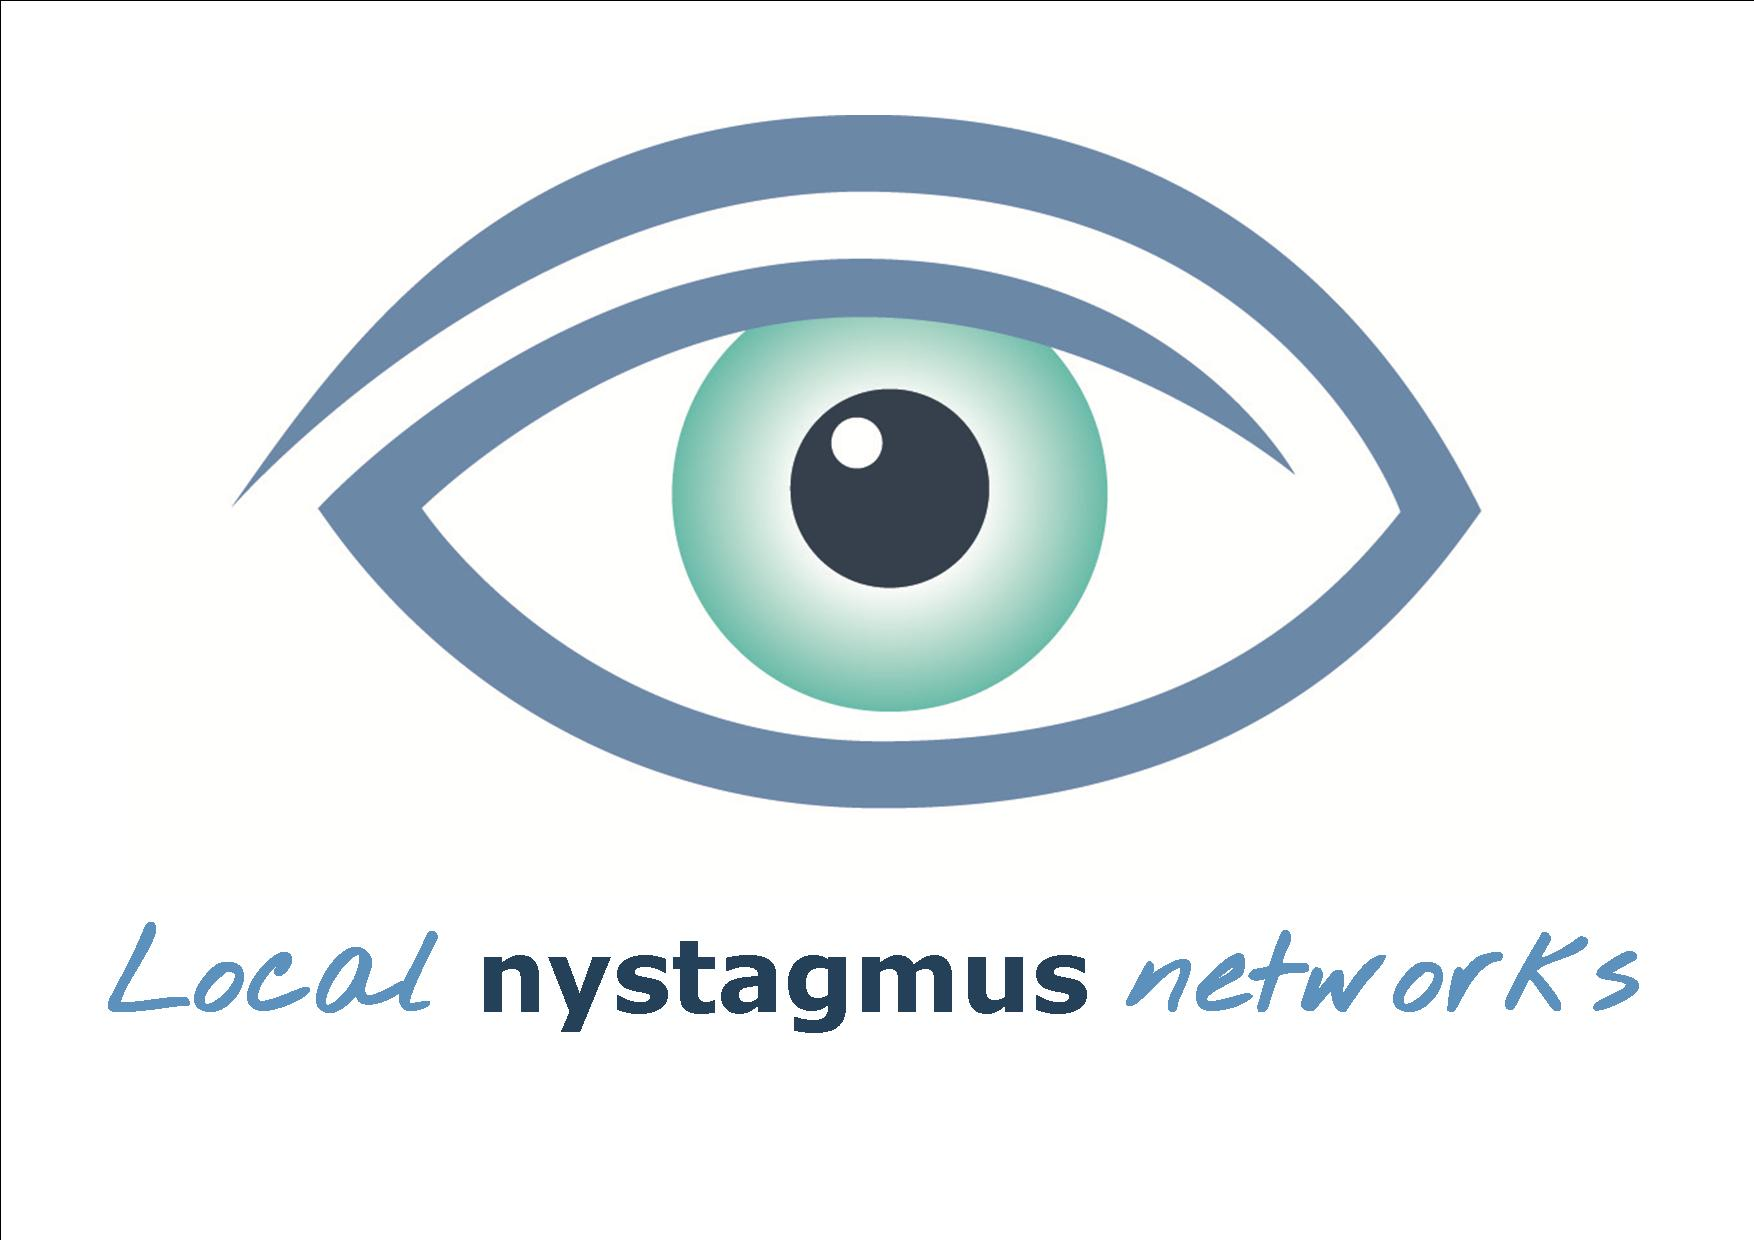 Manchester nystagmus network